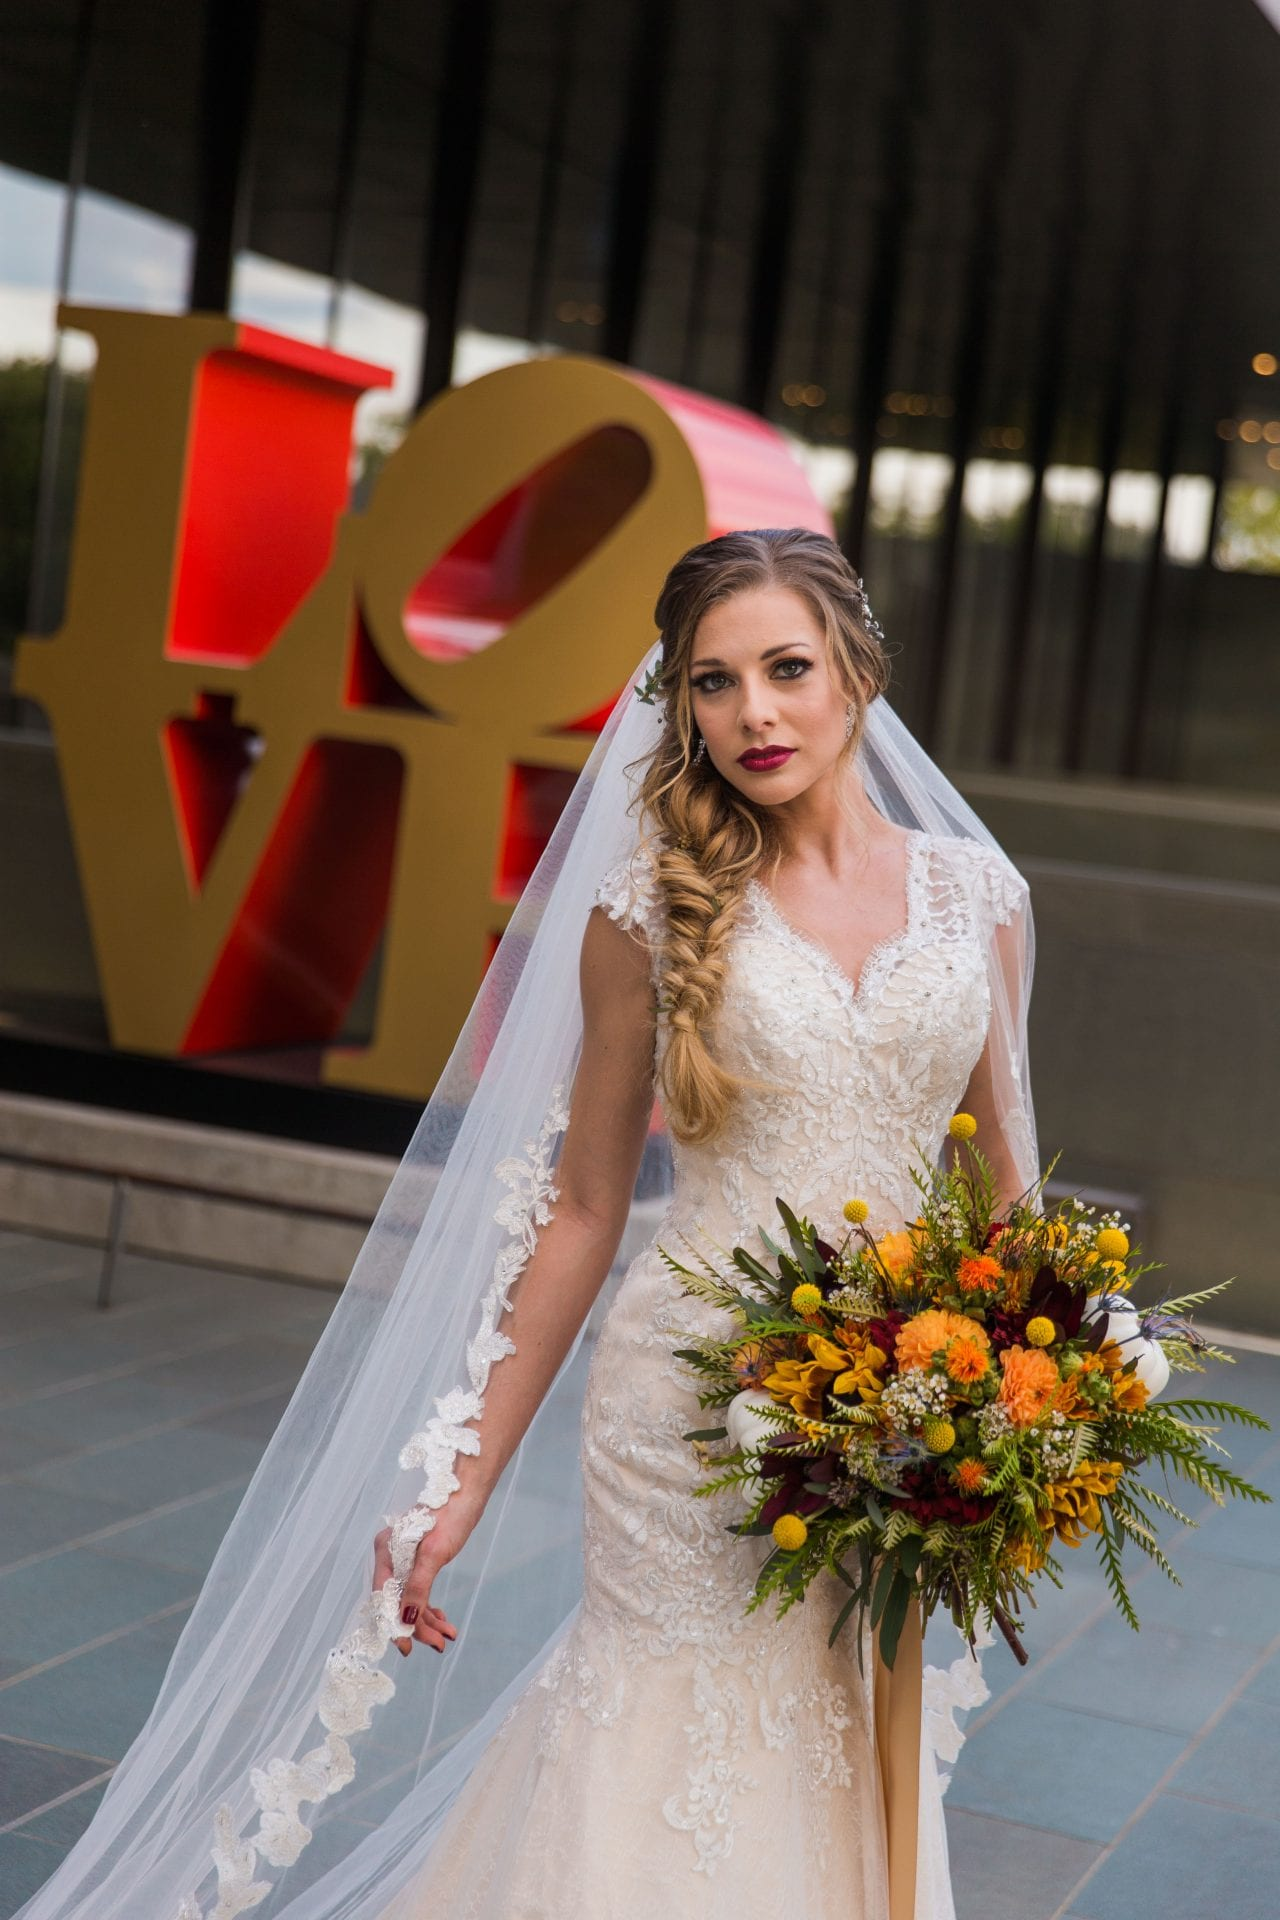 Fall styled shoot at the McNay art museum bride close up at LOVE letters